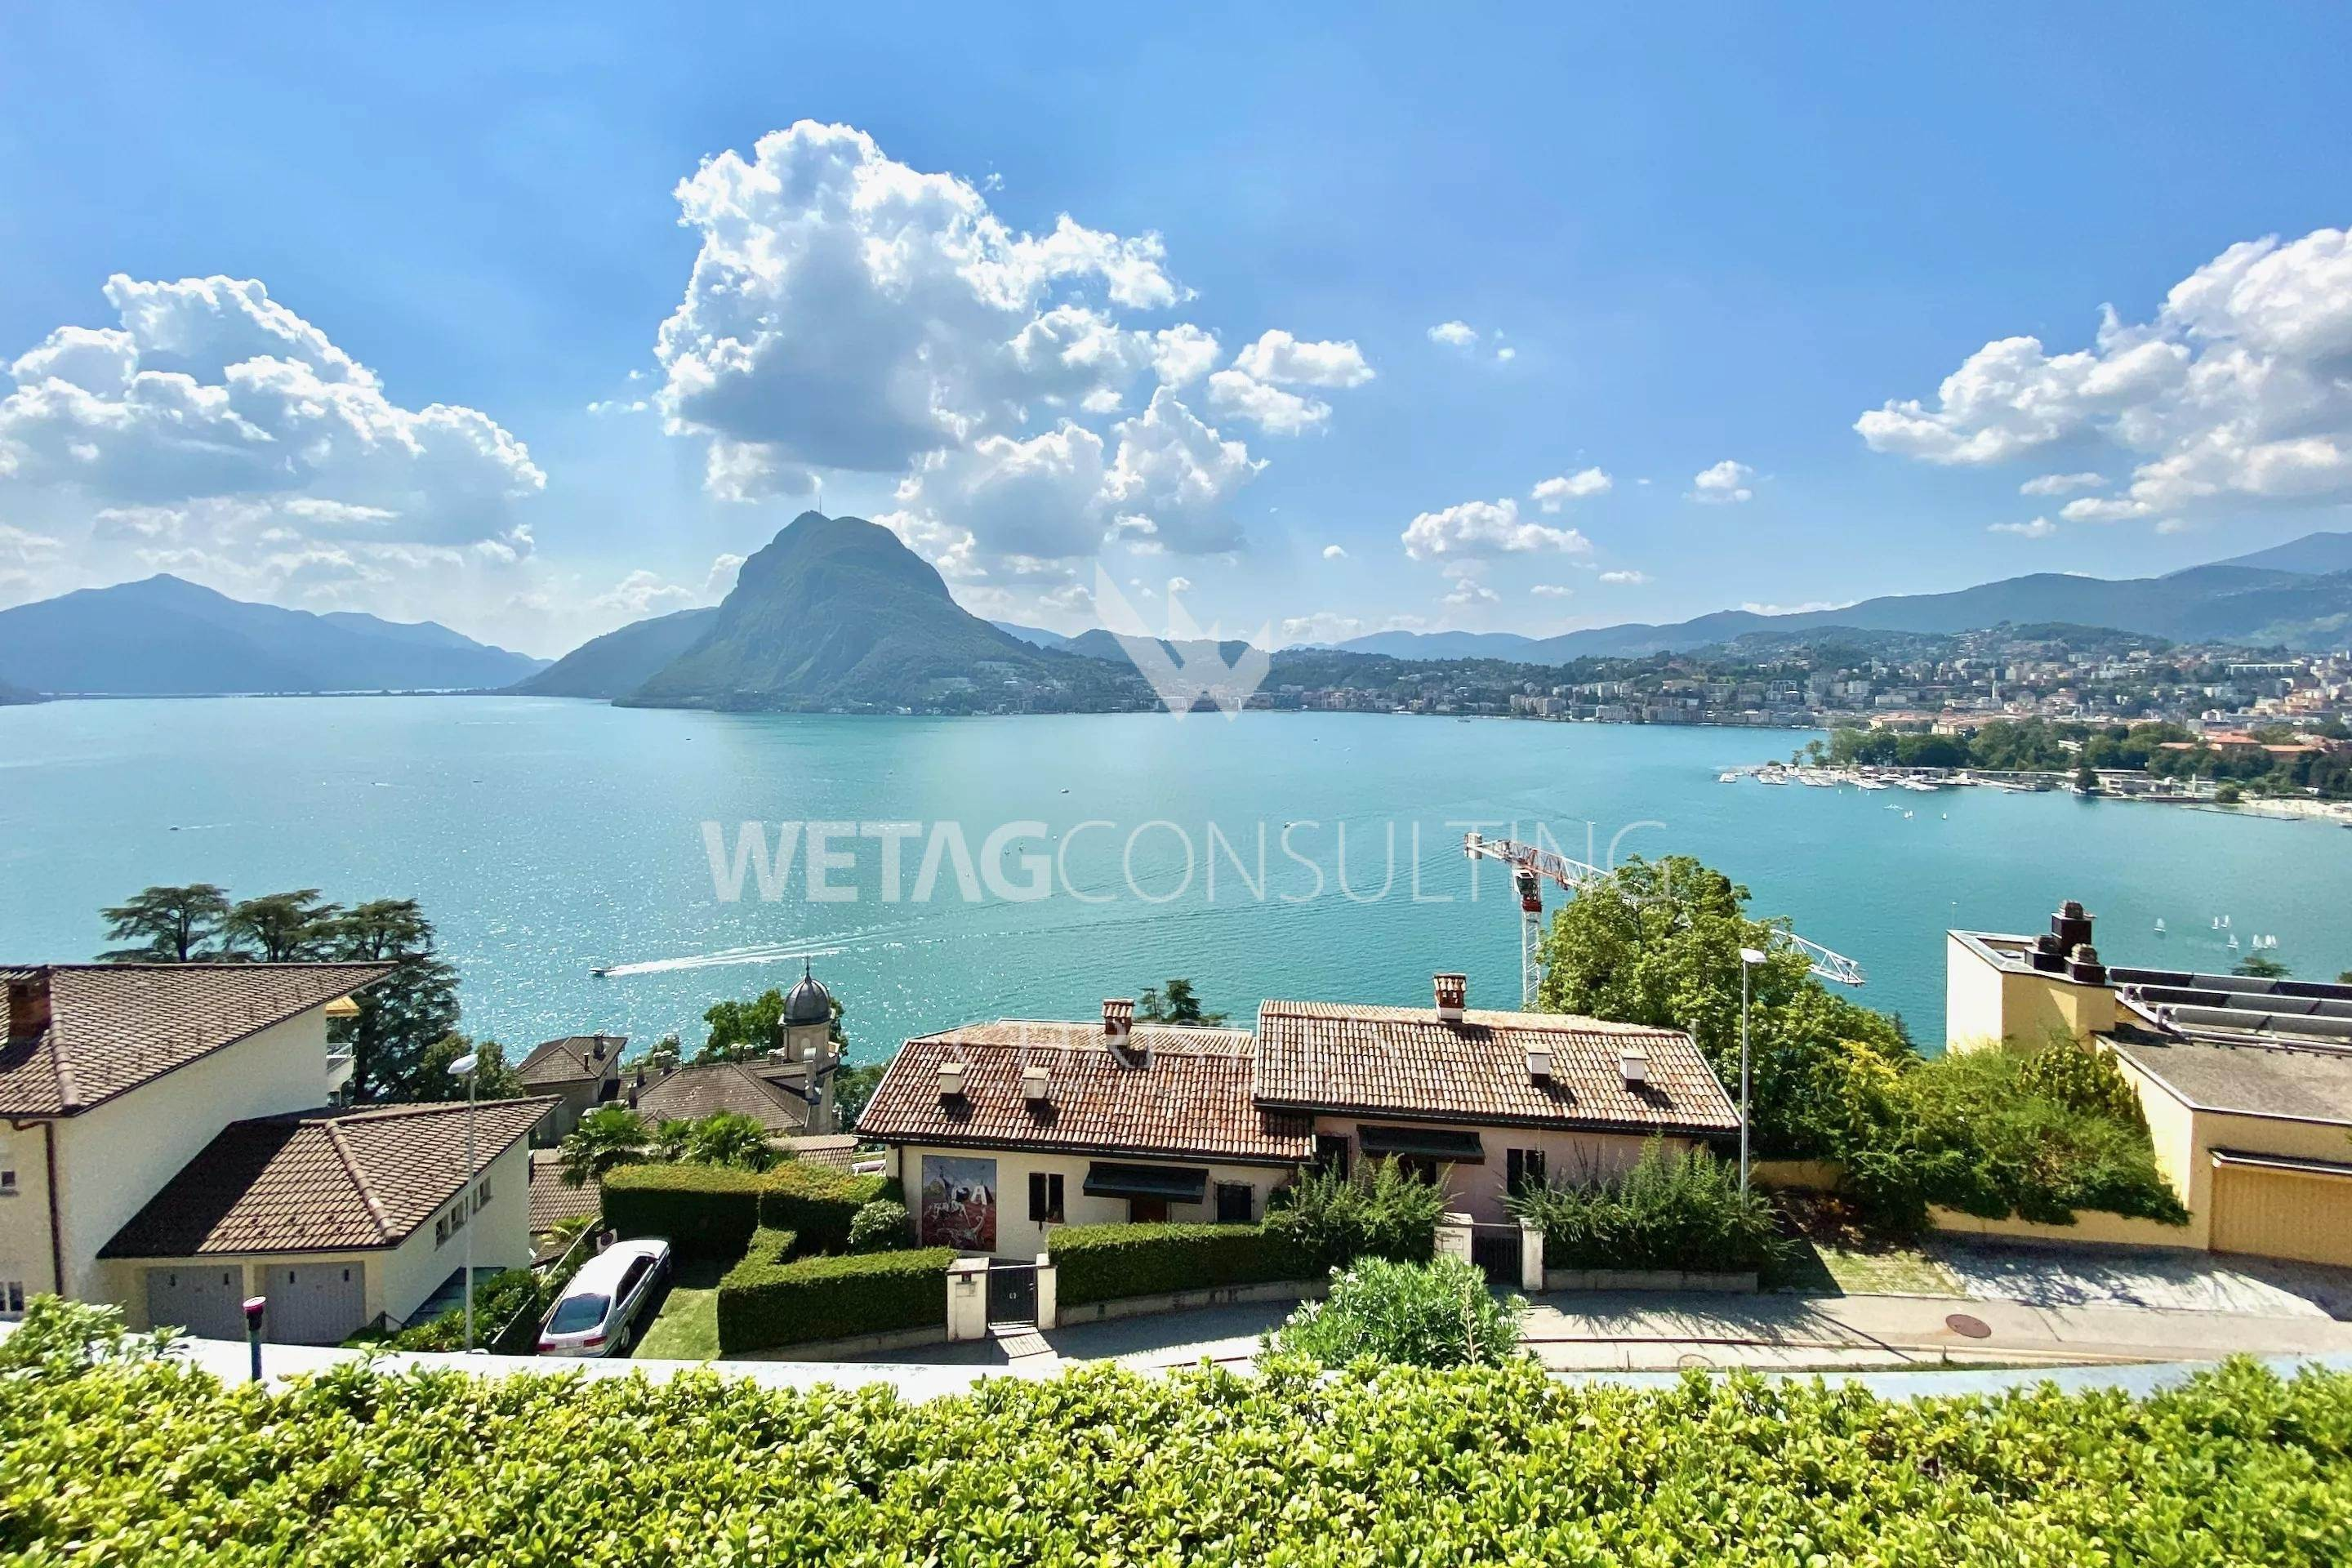 căn hộ vì Bán tại Castagnola: penthouse apartment for sale with stunning views of Lake Lugano Castagnola, Ticino,6976 Thụy Sĩ